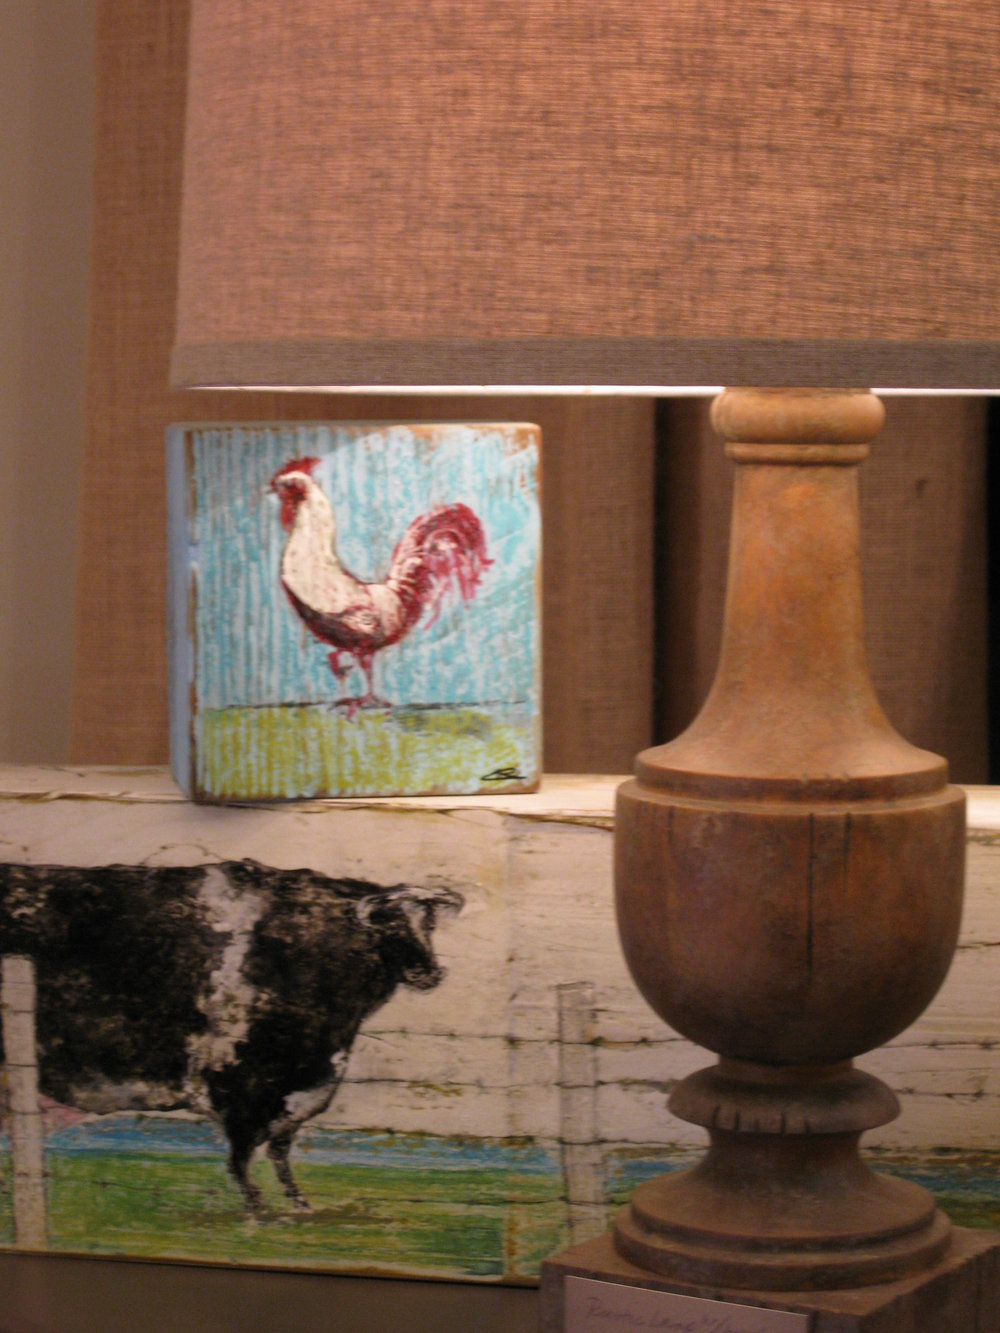 Wood block pieces by Charlie Schiller, selected for art installation at Marketplace Interiors, Tampa.